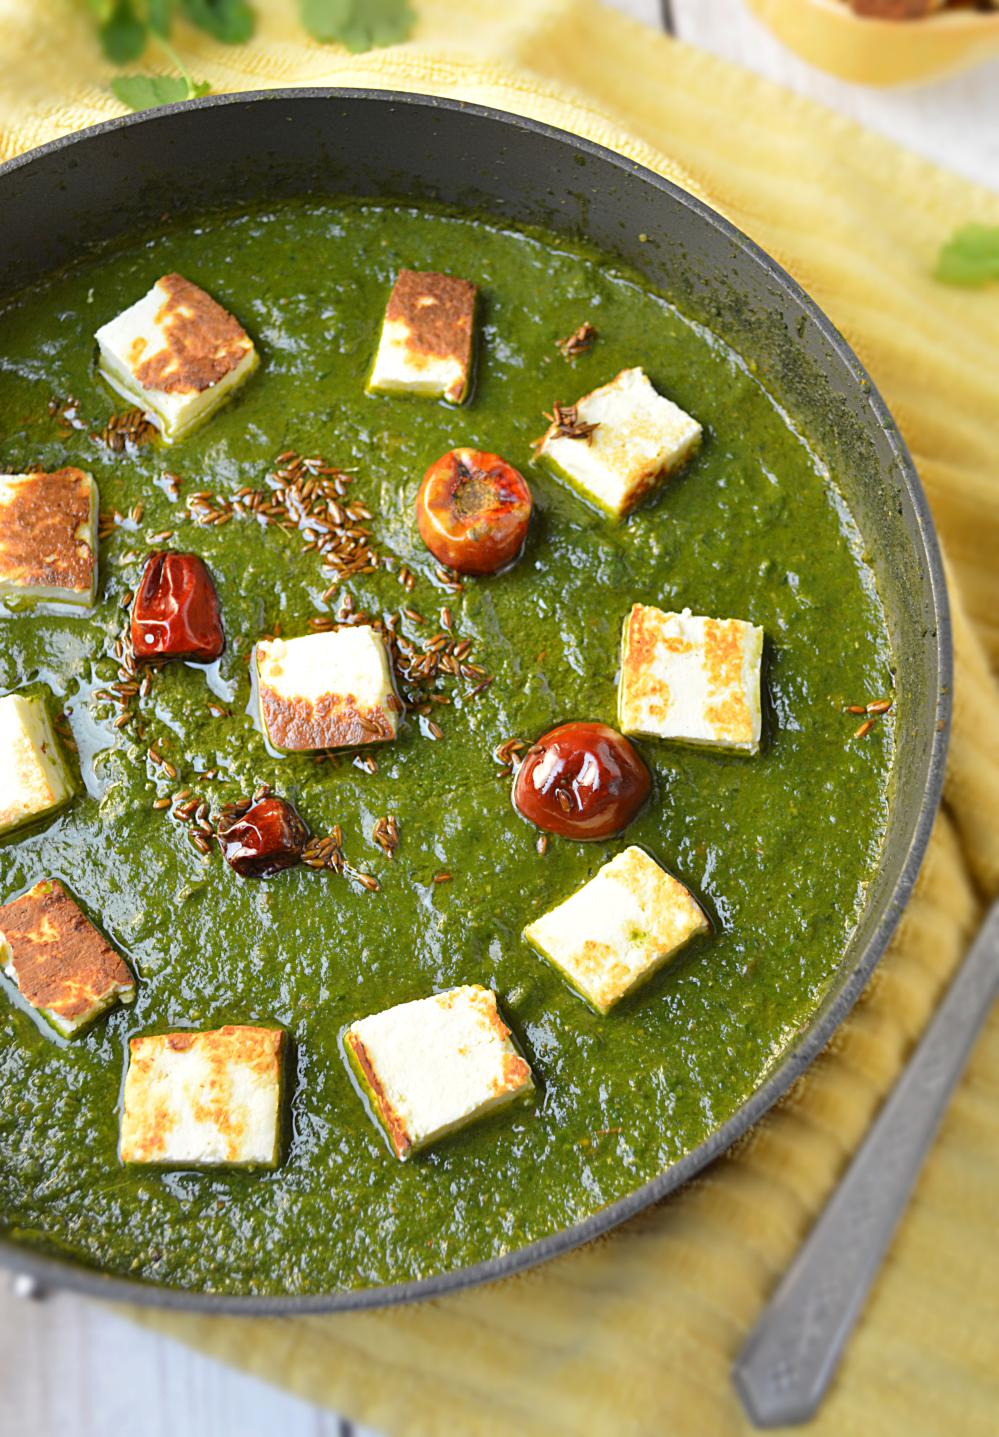 No Onion No Garlic Palak Paneer